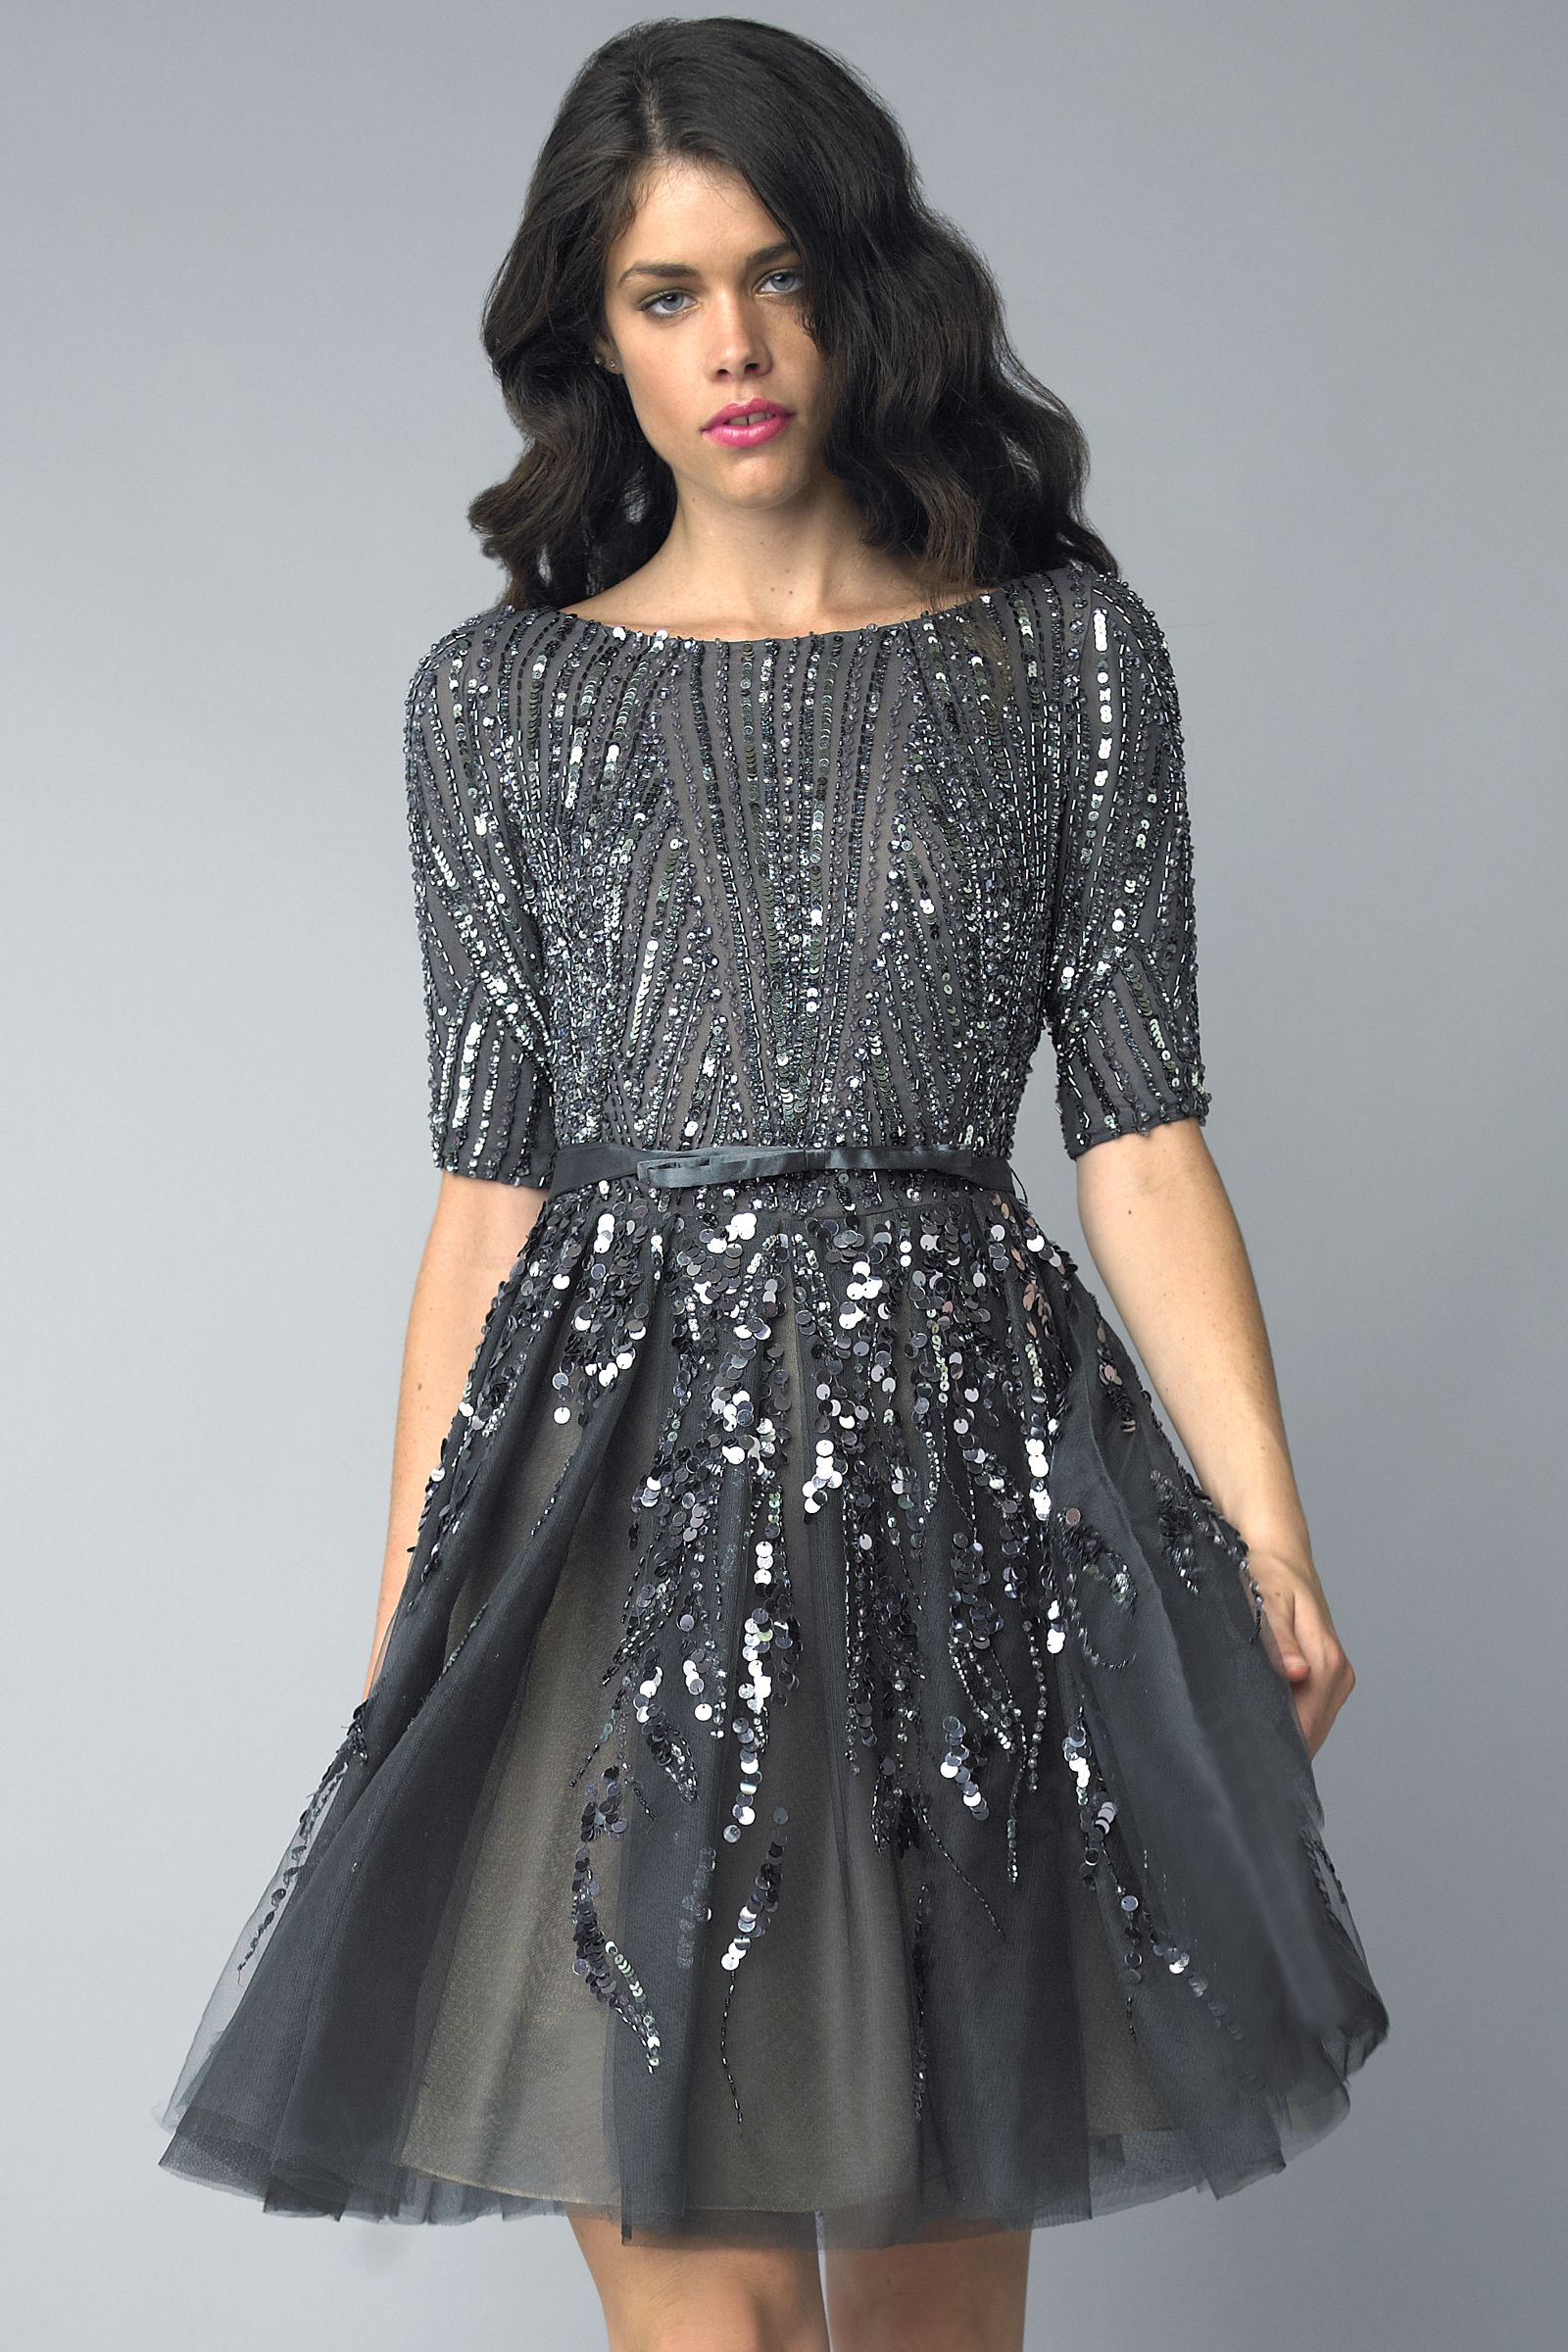 Tulle and sequin cocktail dress with 3 4 sleeve and flare skirt ... 79e97450acc0